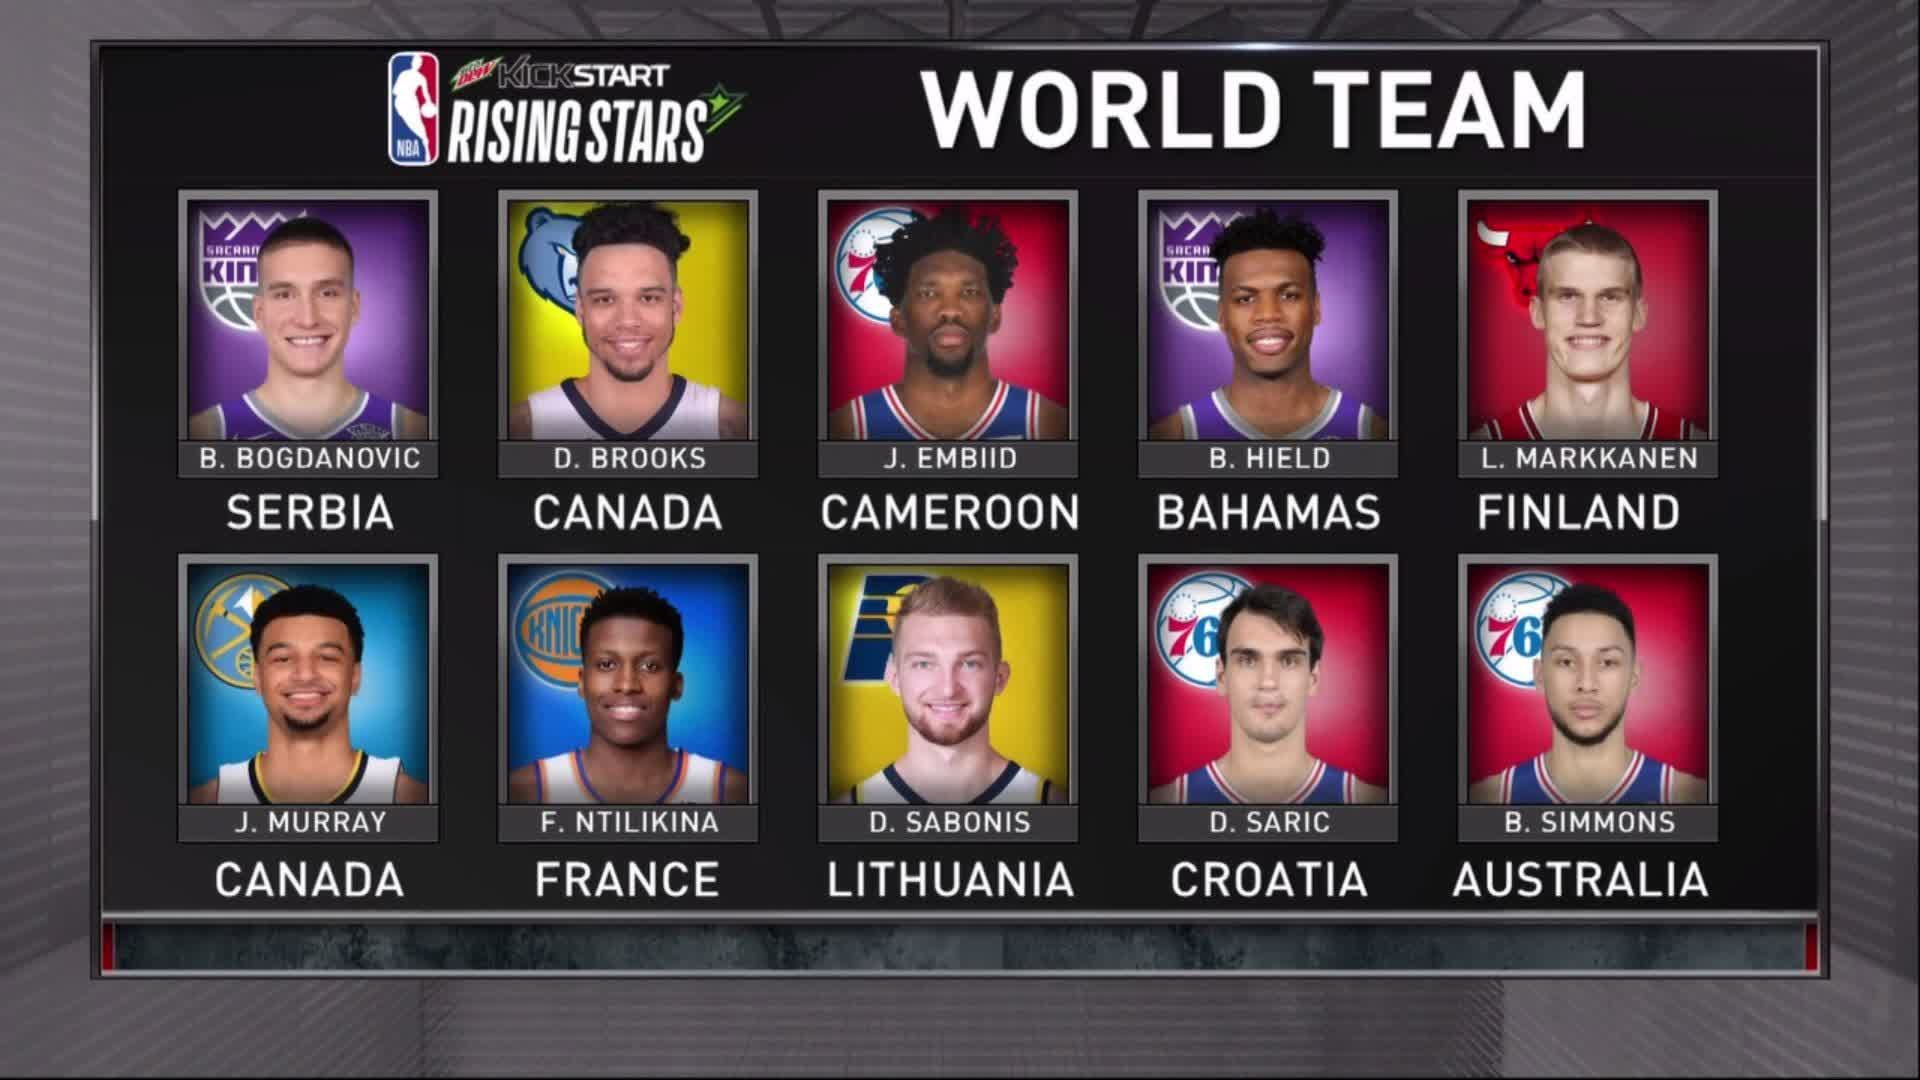 The #PlayersOnly crew highlights what's to come in the #KickstartRisingStars challenge! https://t.co/0jWuWancow